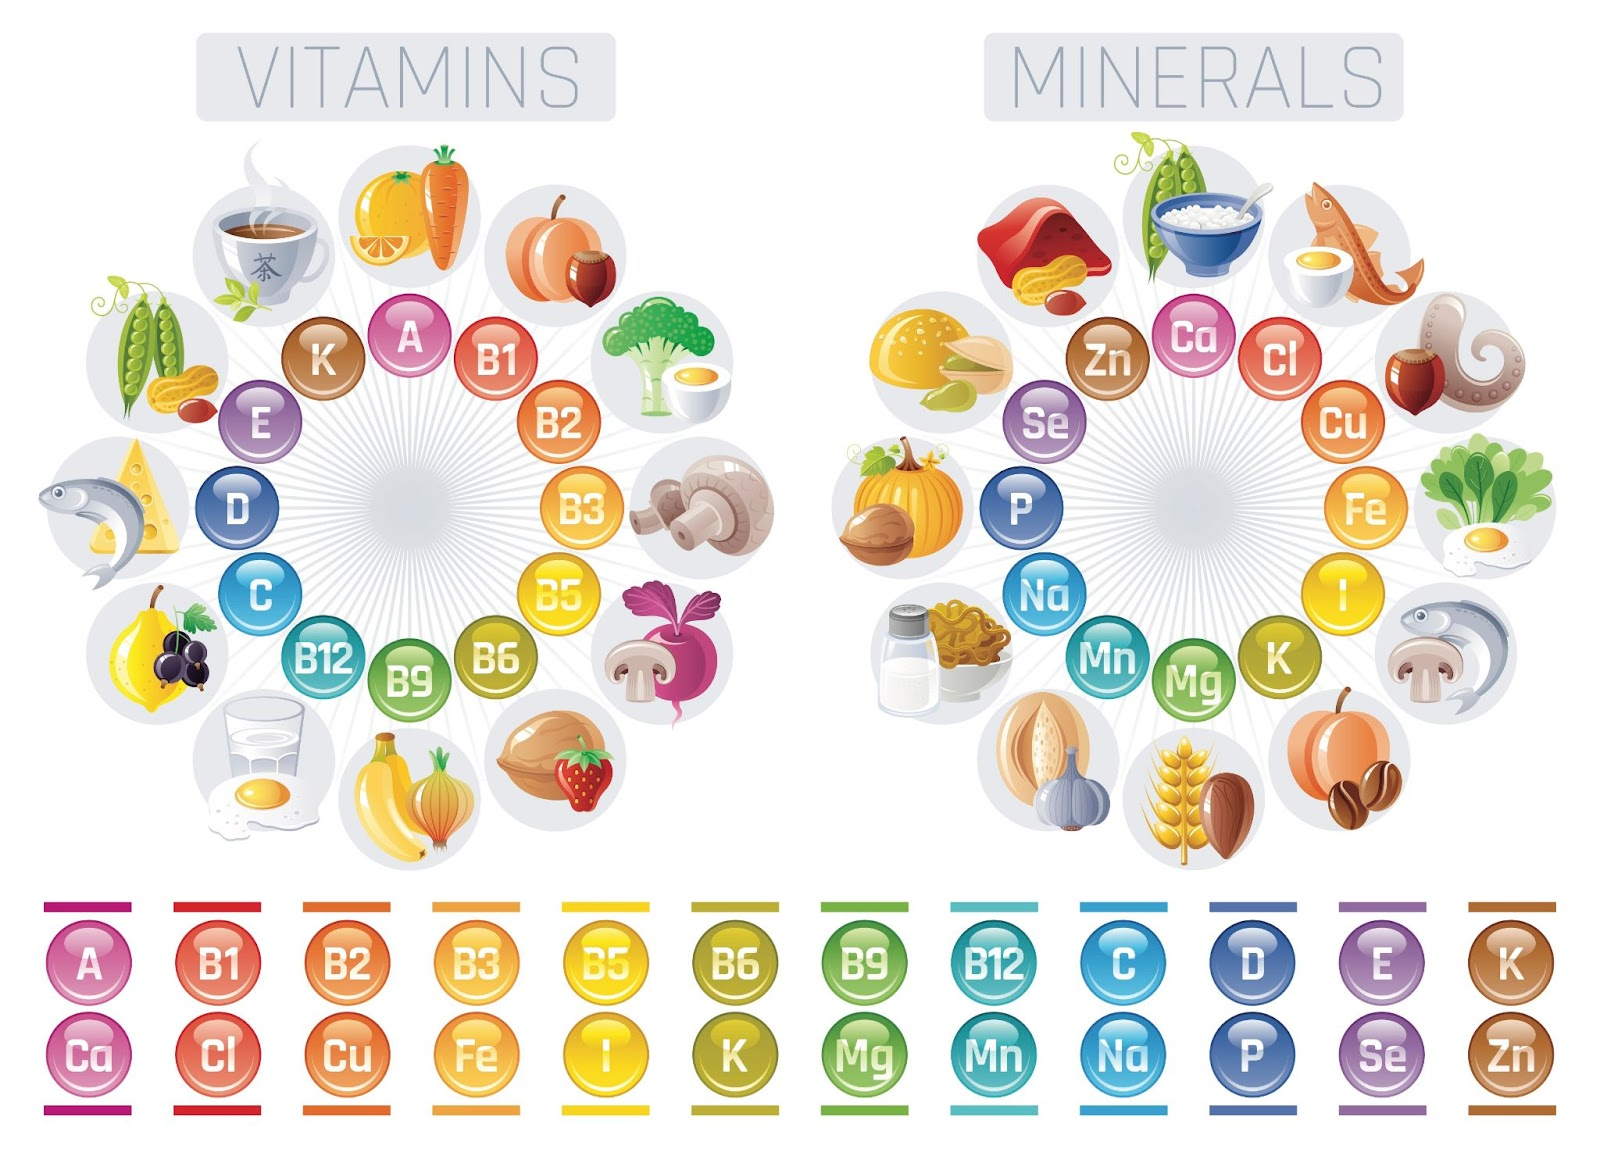 Vitamins and Minerals for Post-Pregnancy Diet